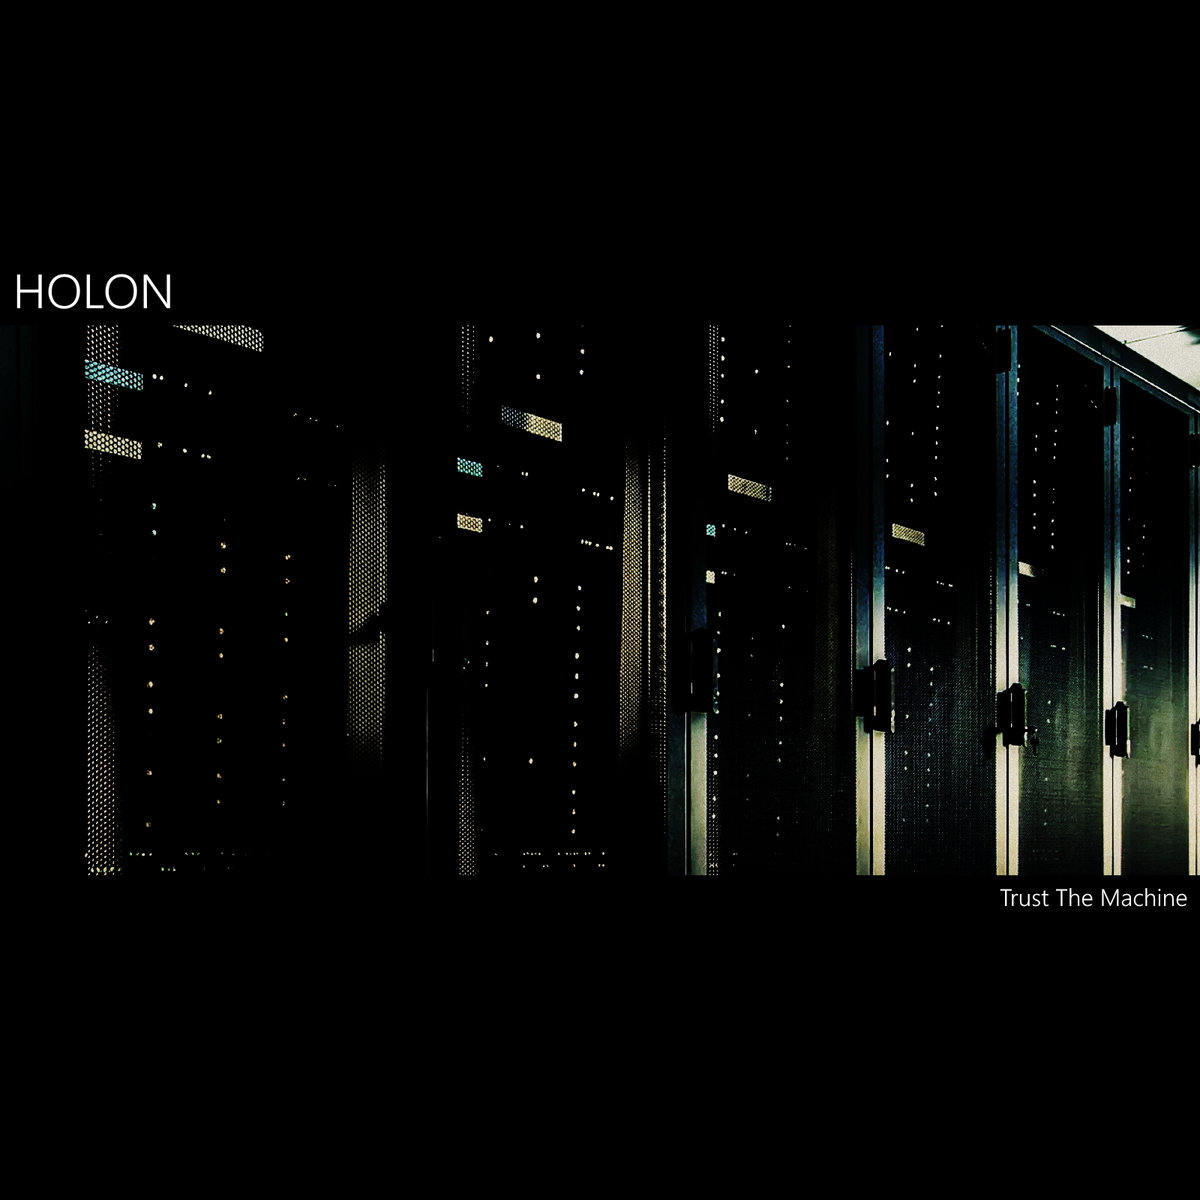 a0044669879 10 - Holon - Trust the Machine